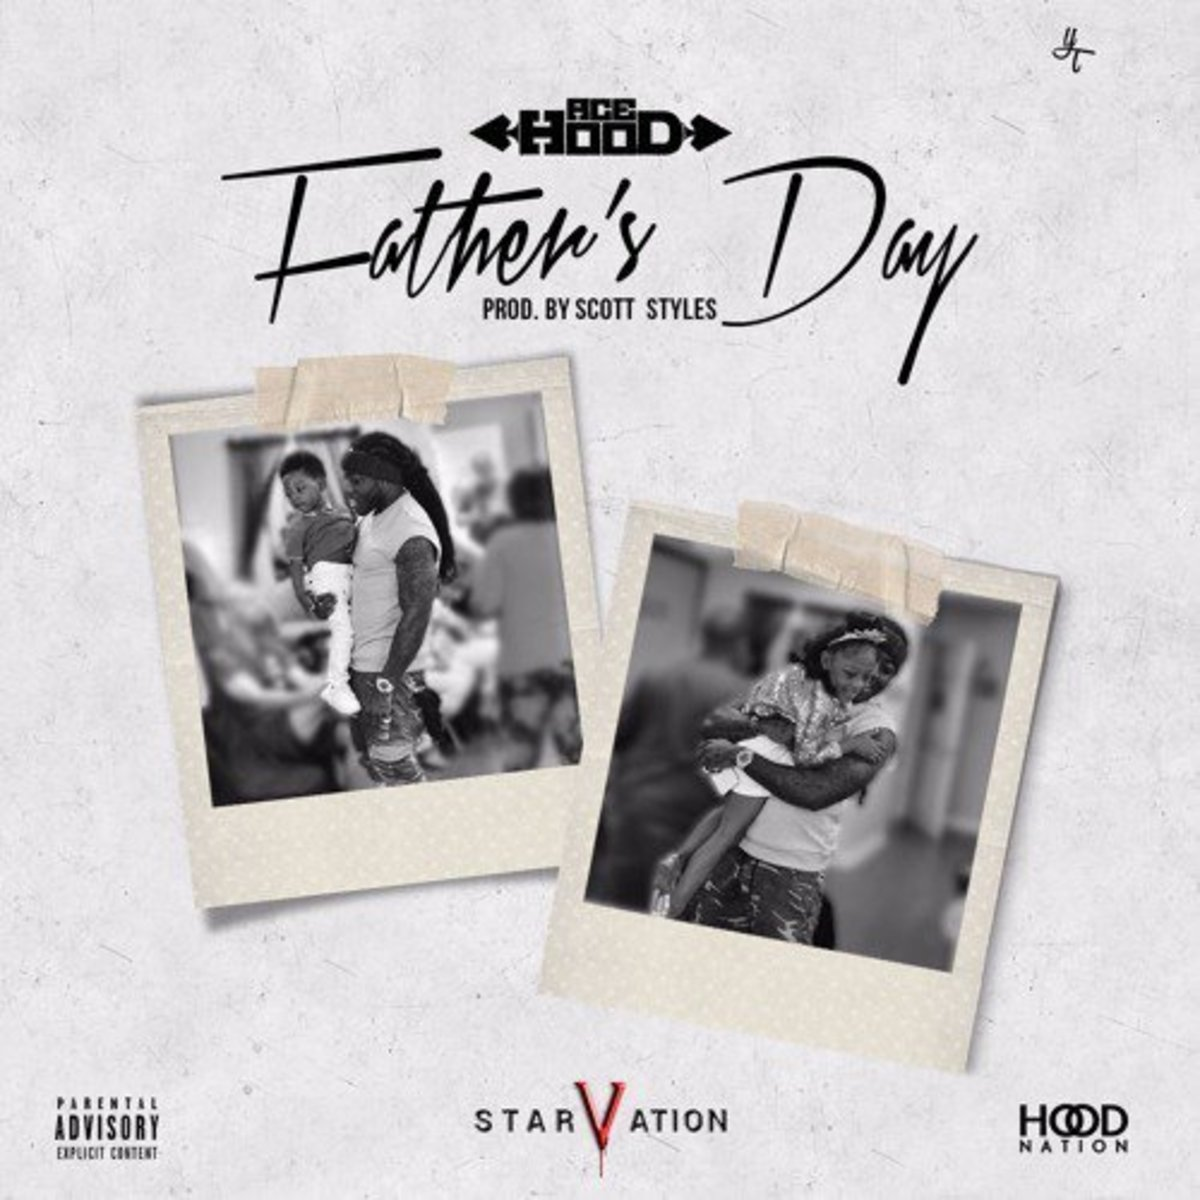 ace-hood-fathers-day.jpg